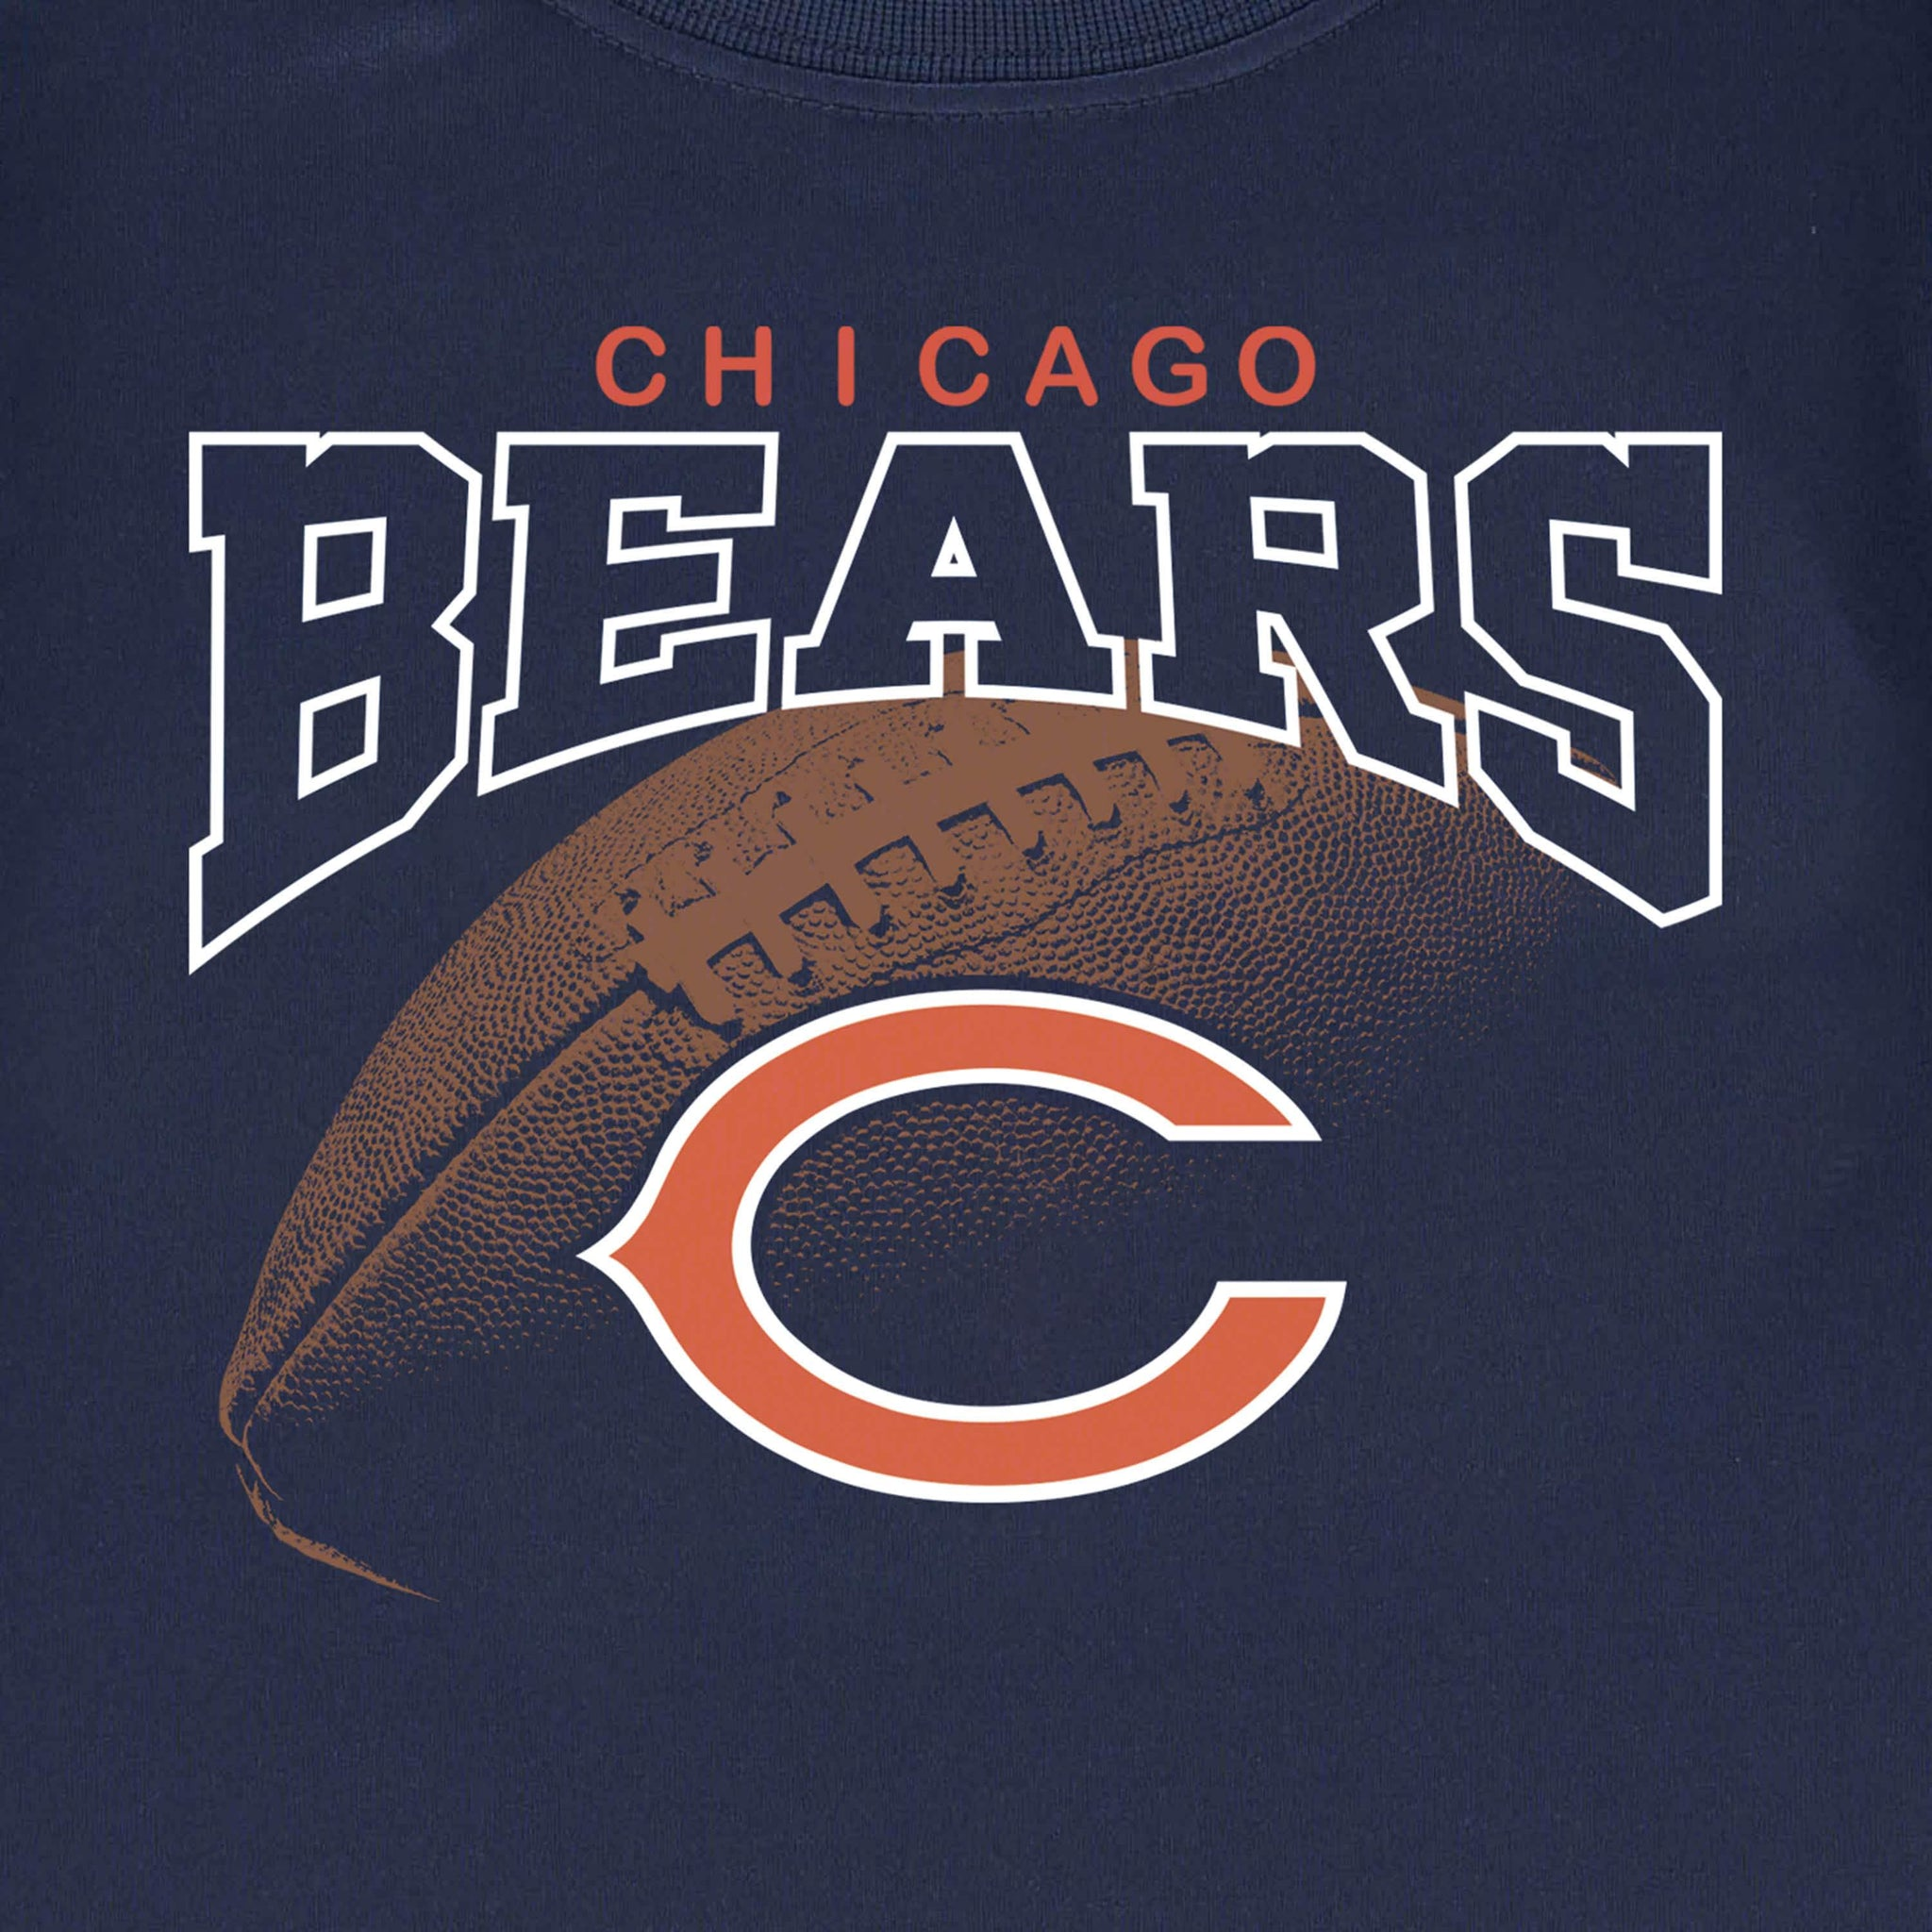 Chicago Bears Toddler Boys Tee Shirt-Gerber Childrenswear